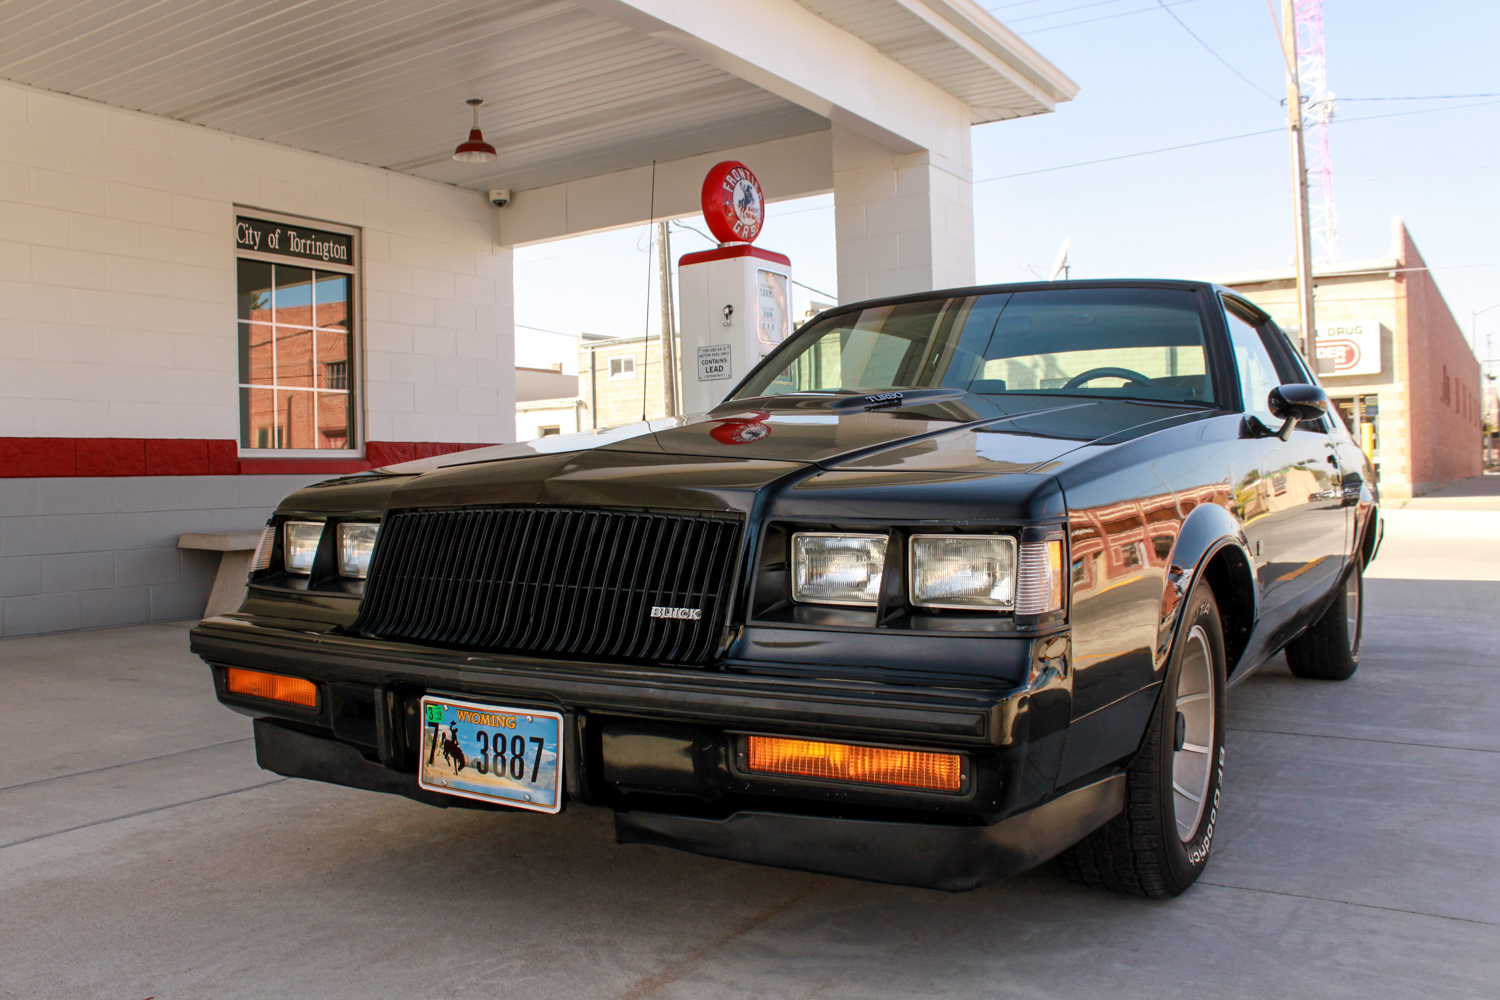 1987 Buick turbo-T by gas pump